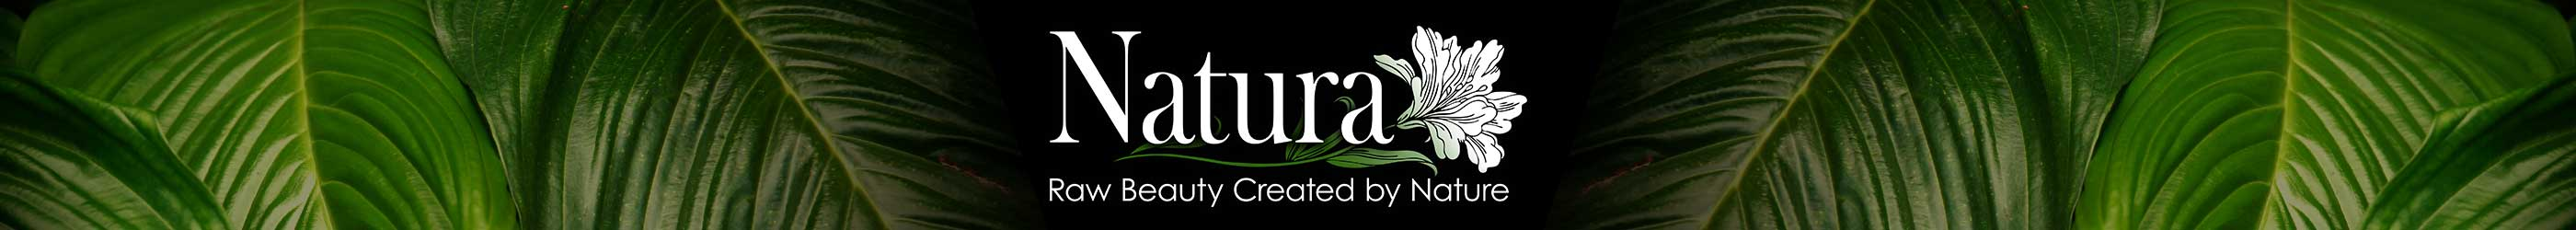 Natura Raw Beauty